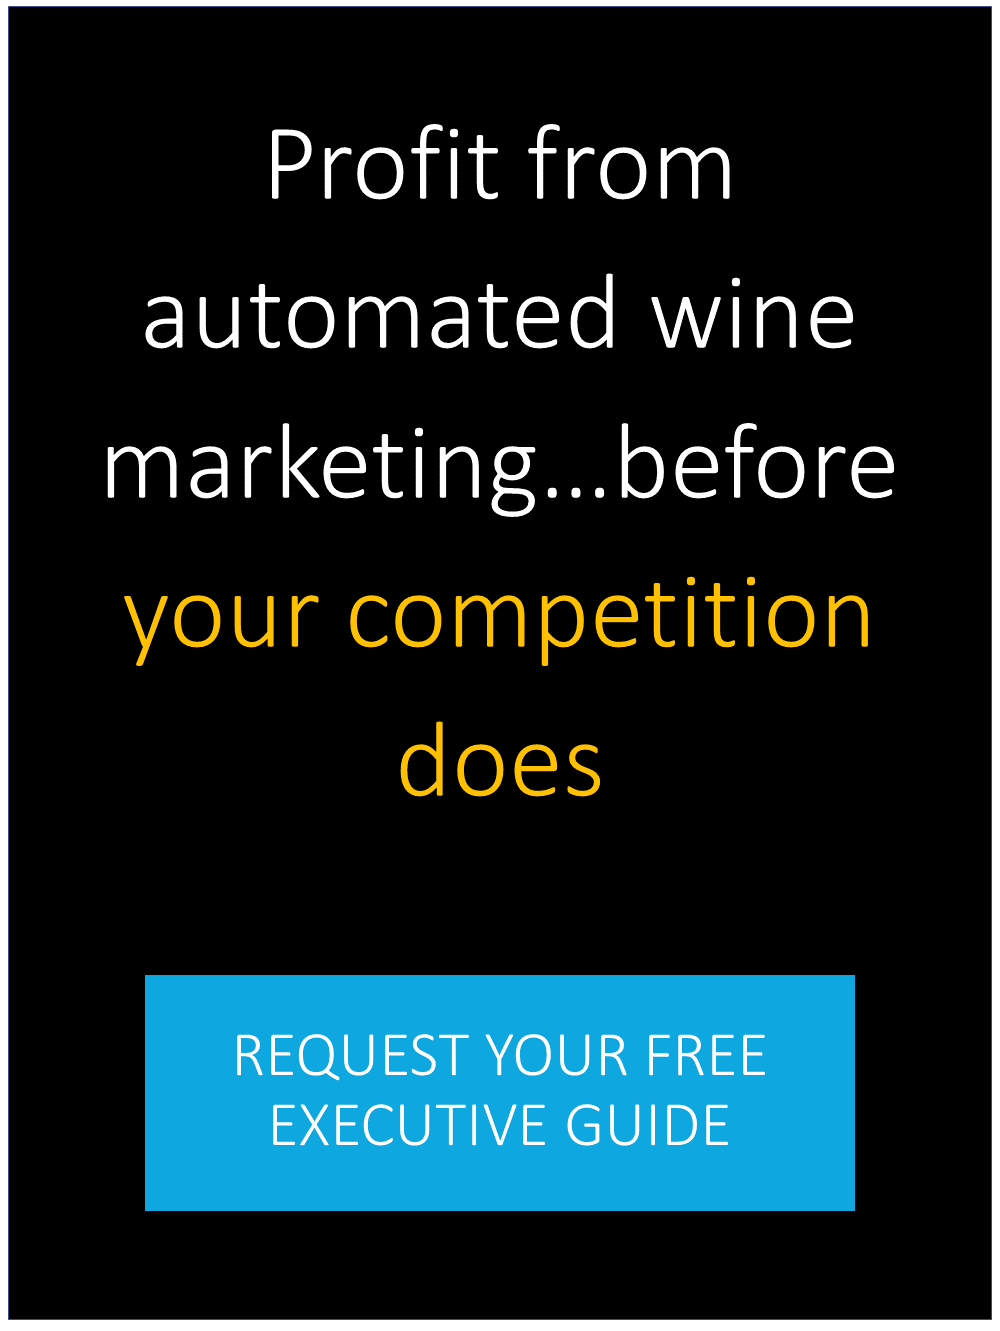 Request your free white paper on automated wine marketing